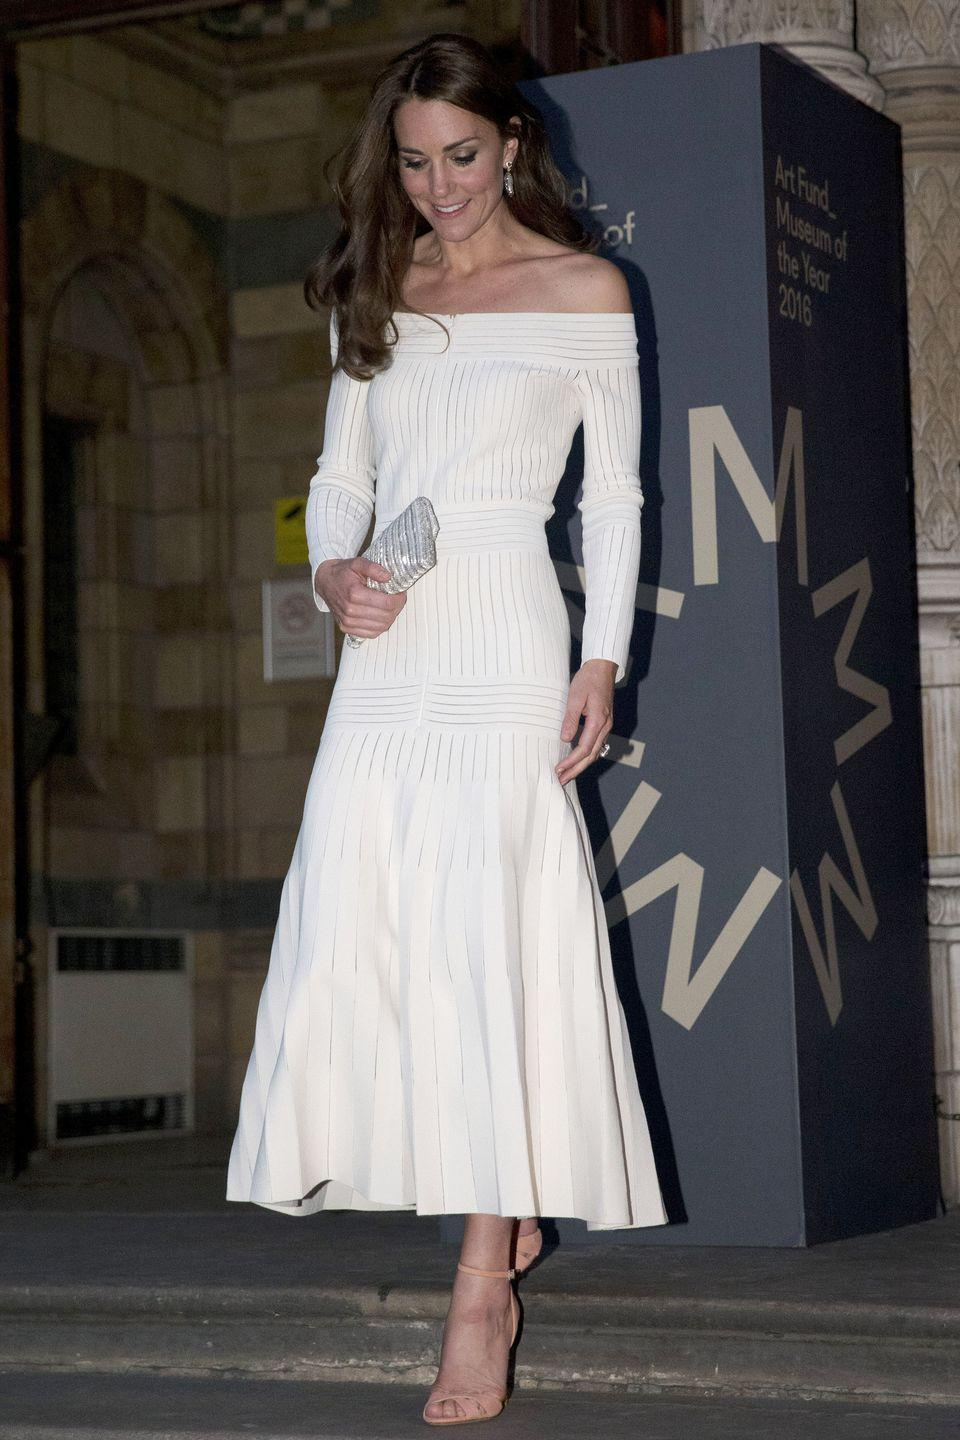 <p>The duchess wore a cream off-the-shoulder, jersey paneled dress by Barbara Casasola with a silver clutch and tan heeled sandals at the Natural History Museum in London.</p>